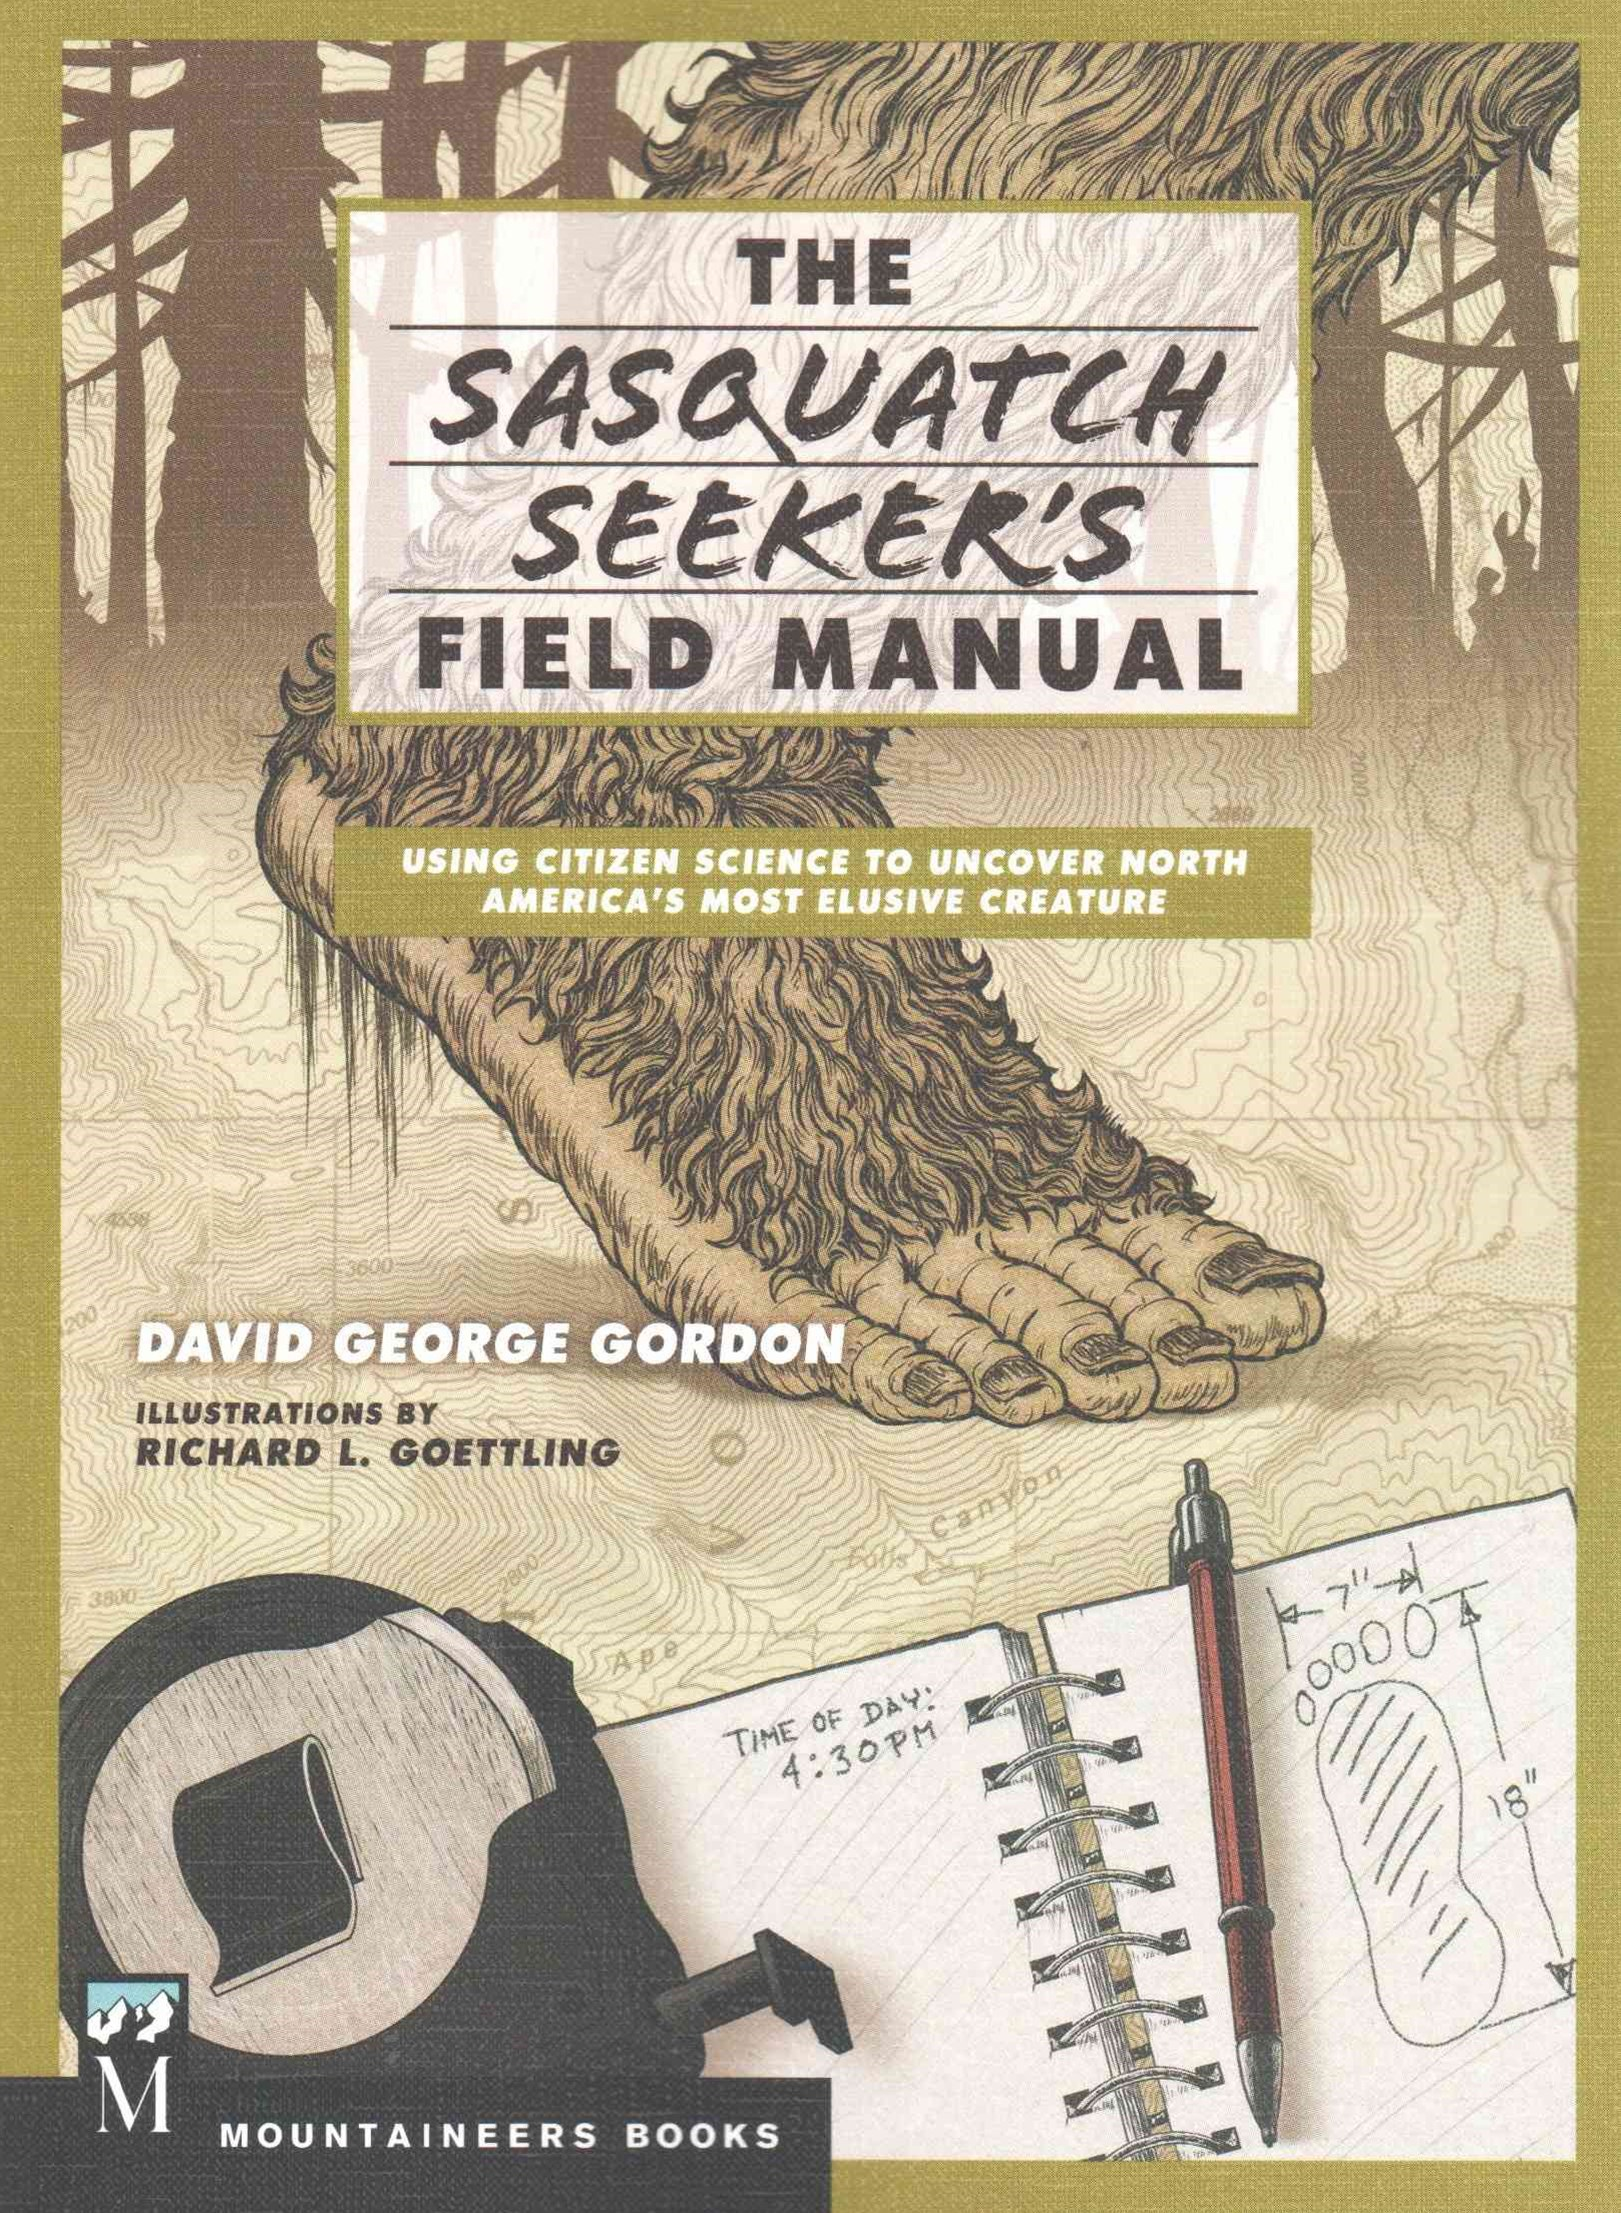 The Complete Sasquatch Field Manual